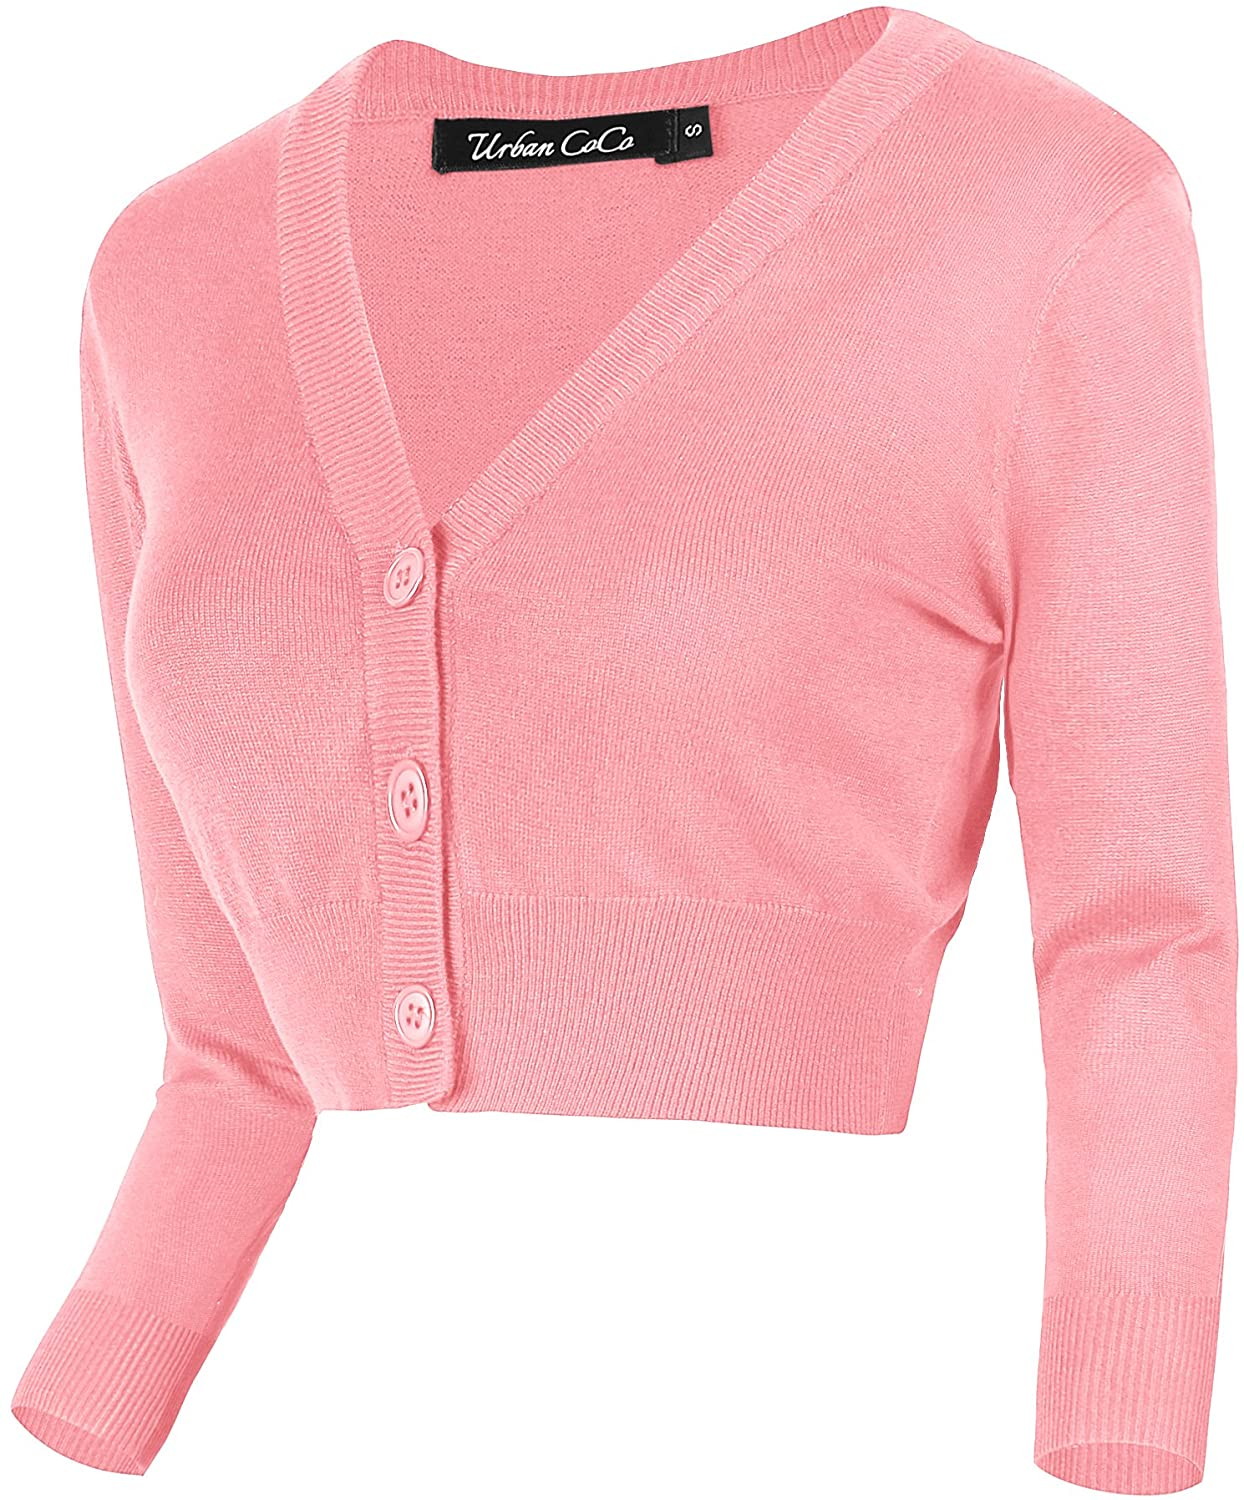 Urban CoCo Women's Cropped Outlet ☆ Free Shipping Cardigan Down Knitted S Inventory cleanup selling sale V-Neck Button